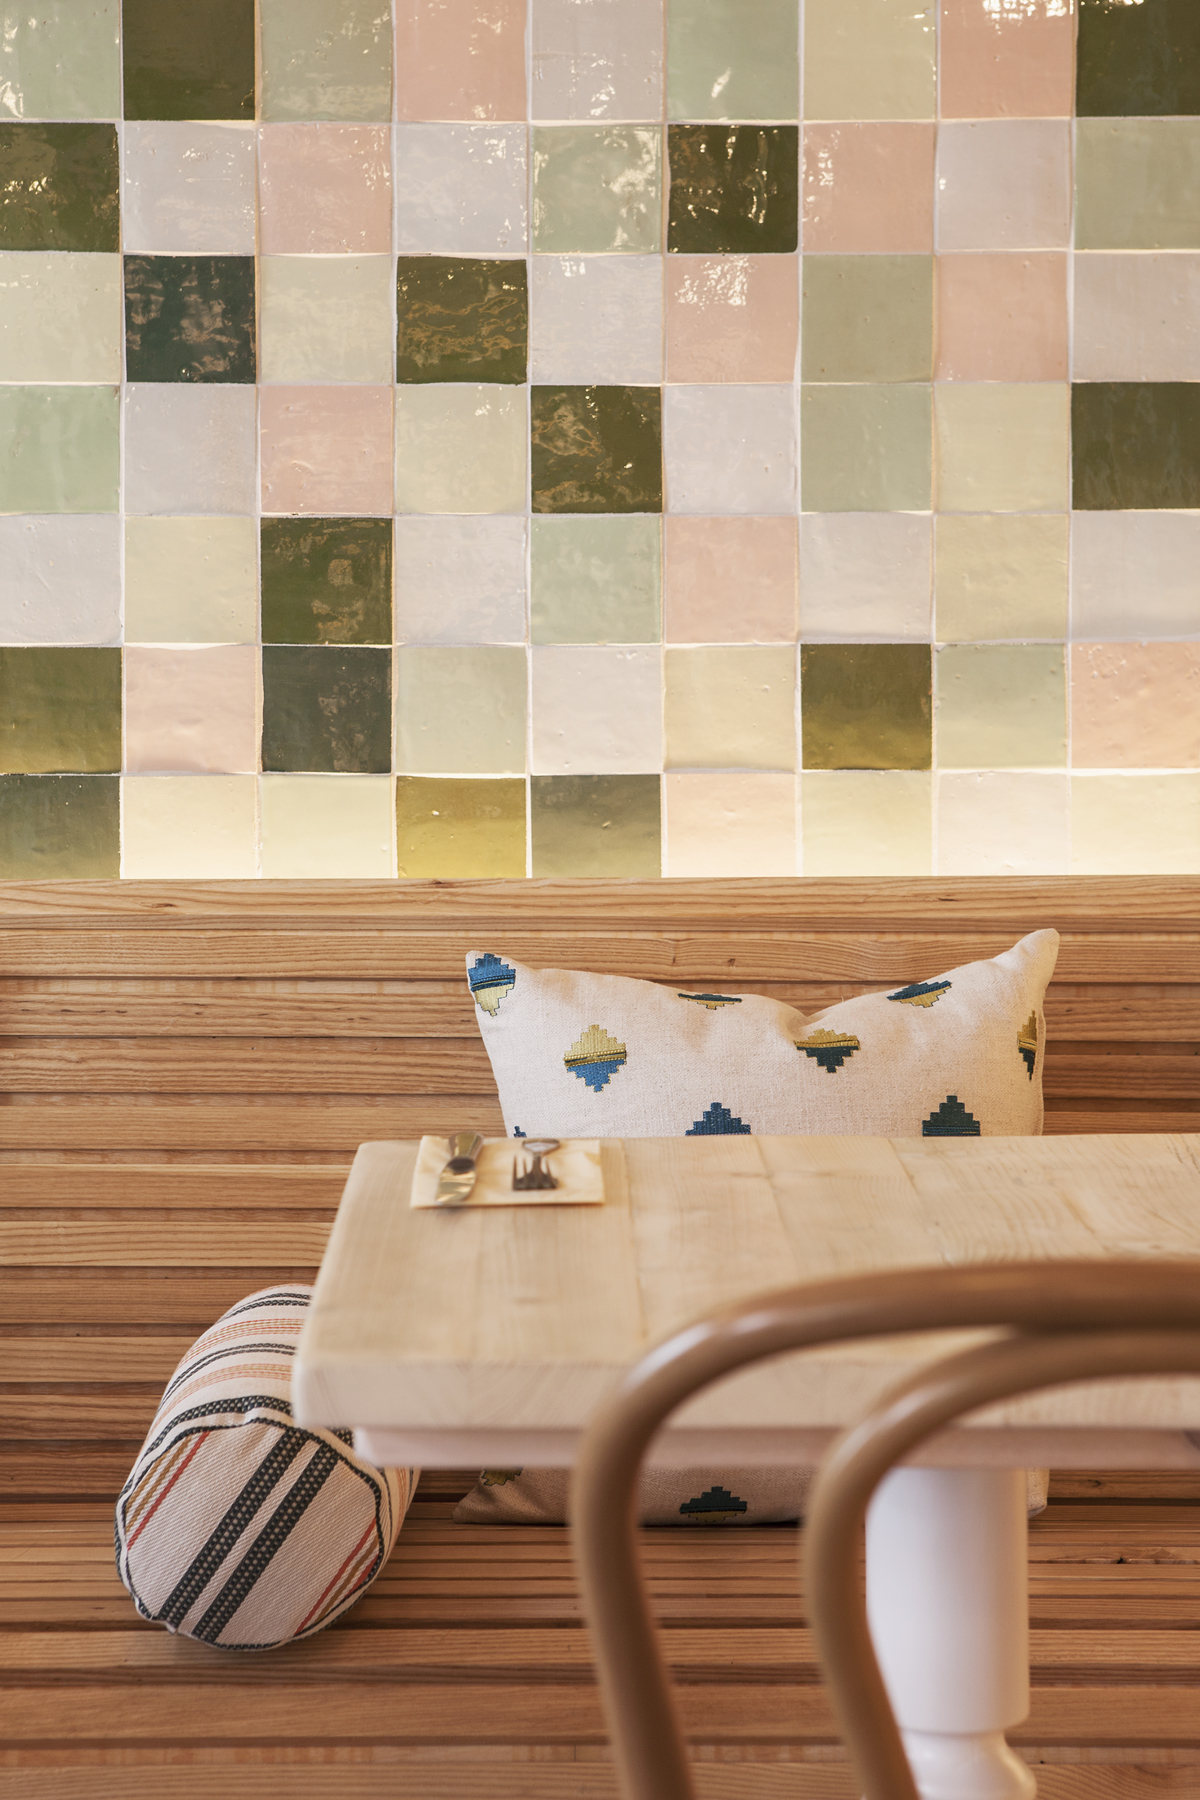 DesignLSM Avobar project images for SBID interior design blog, Project of the Week